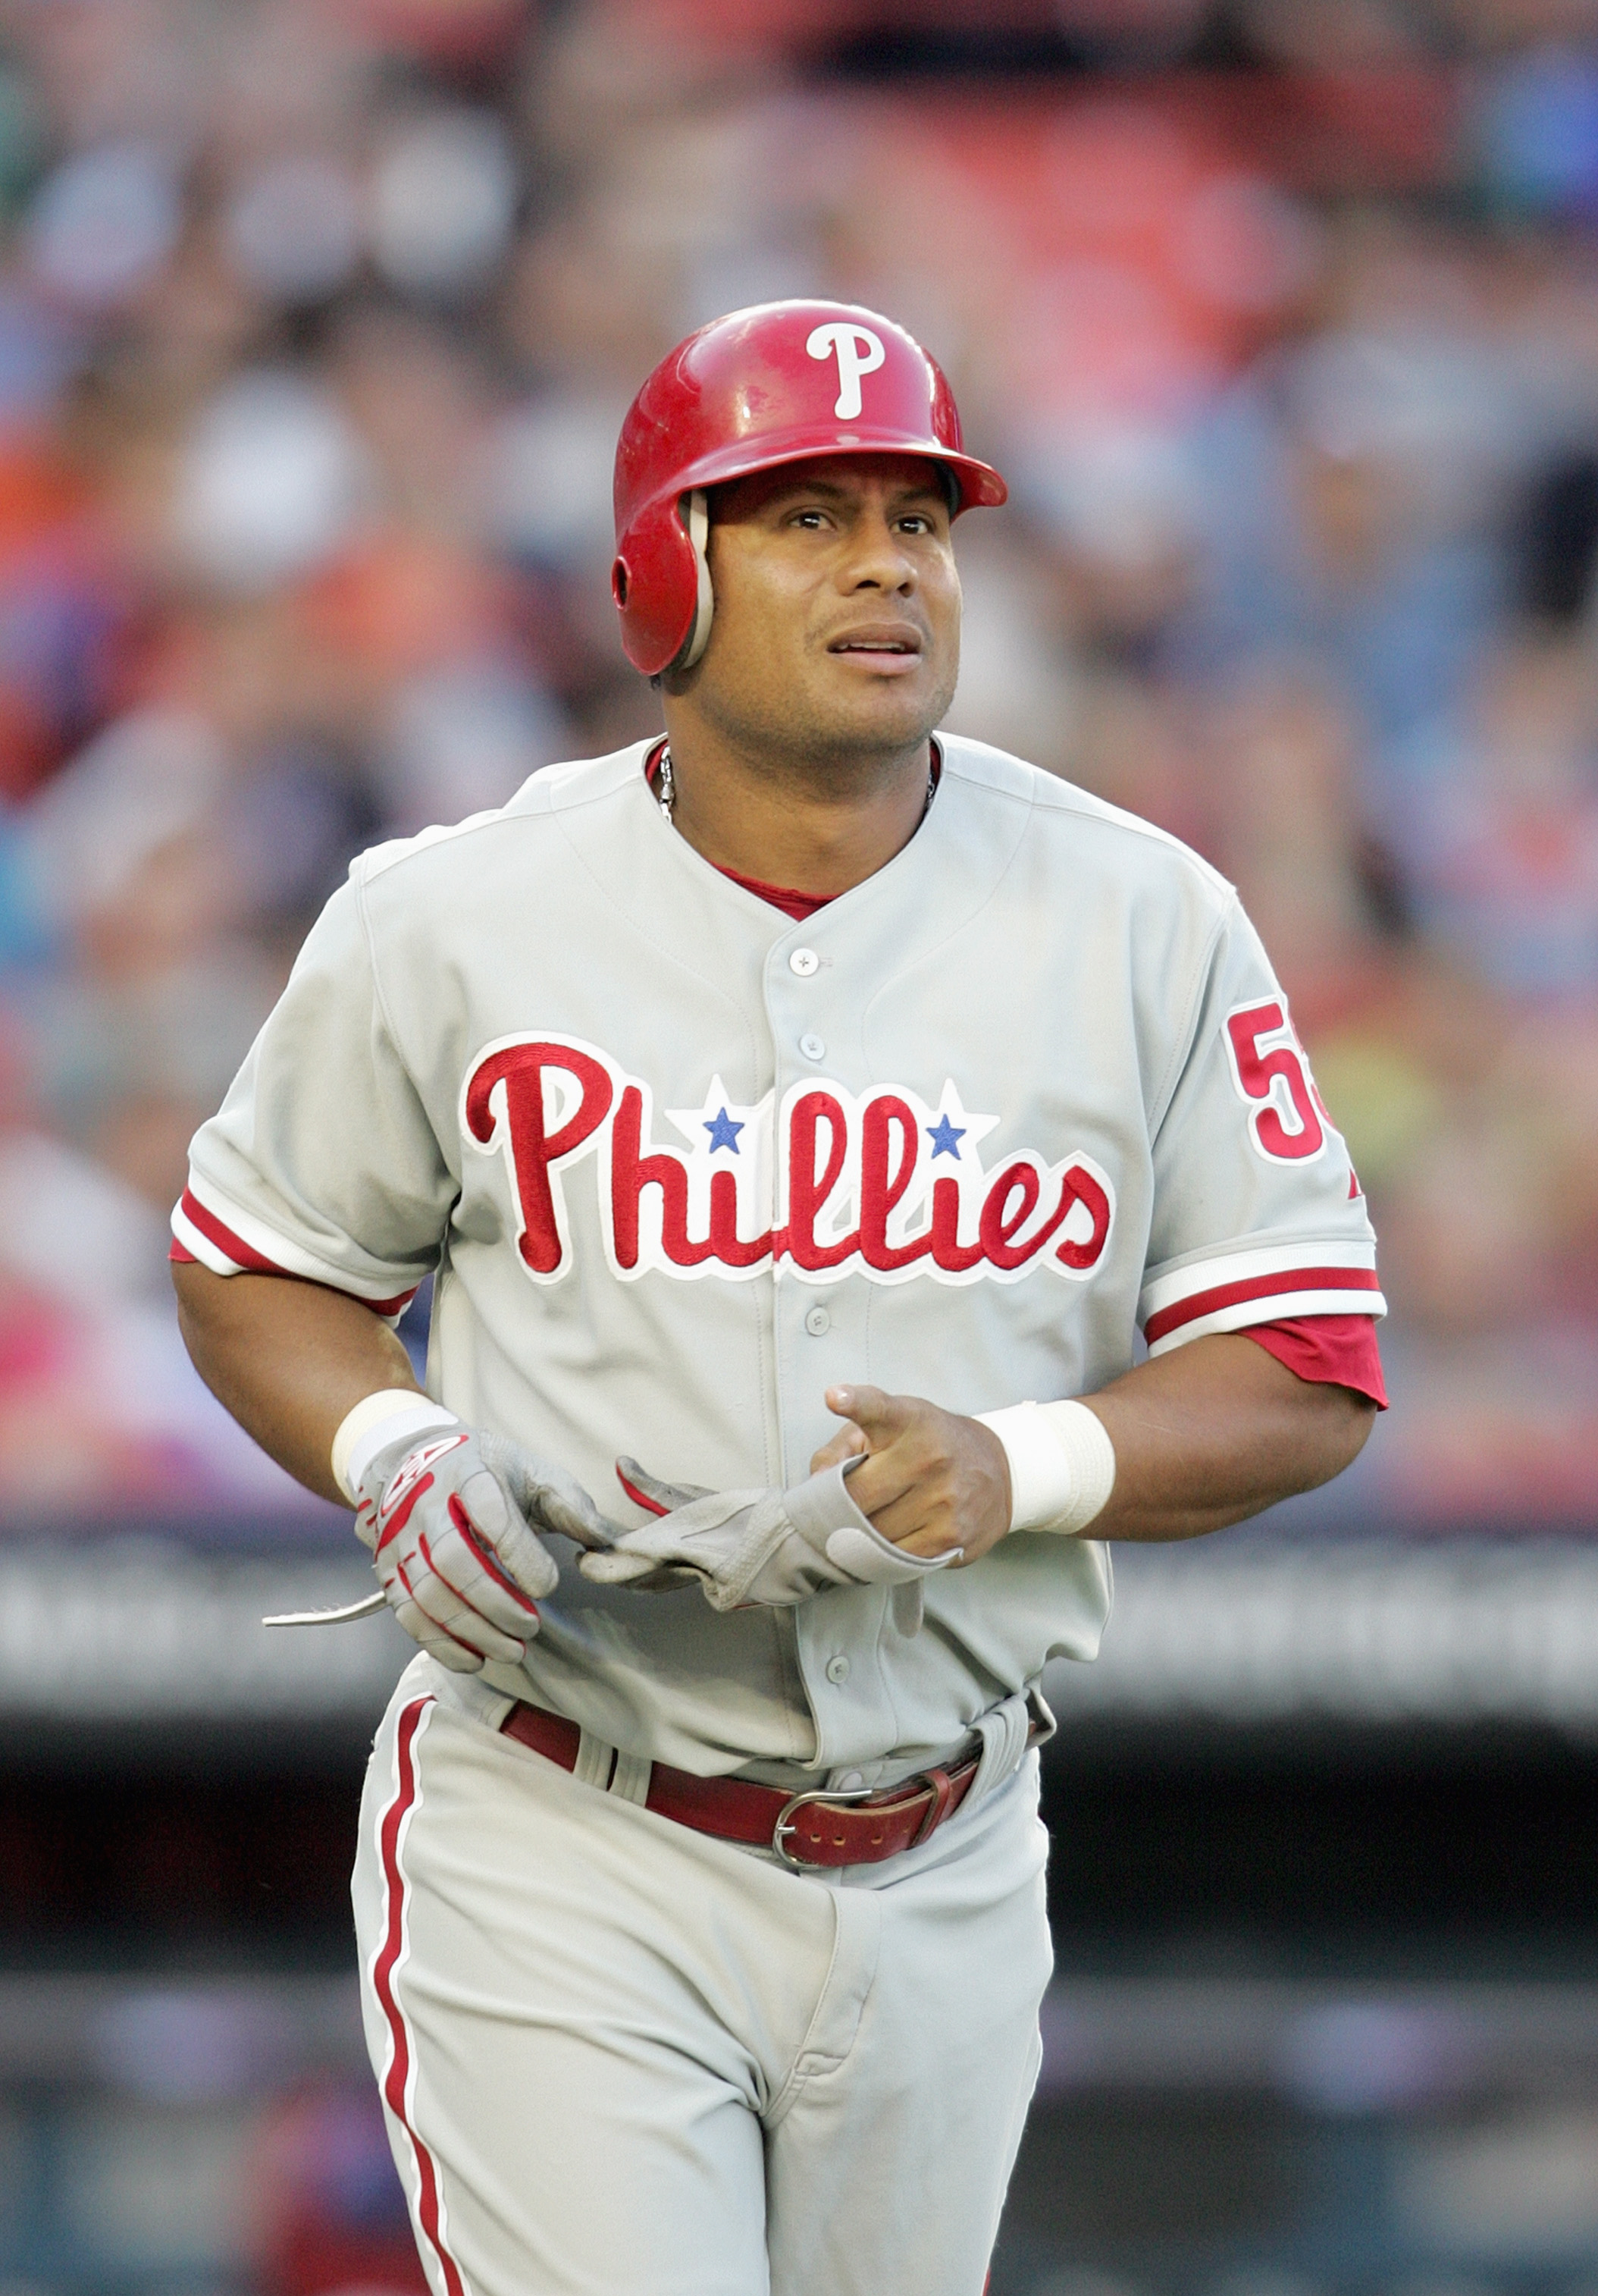 FLUSHING, NY - MAY 24: Bobby Abreu #53 of the Philadelphia Phillies moves to first base during the game against the New York Mets on May 24, 2006 at Shea Stadium in the Flushing neighborhood of the Queens borough of New York City. The Mets won 5-4. (Photo